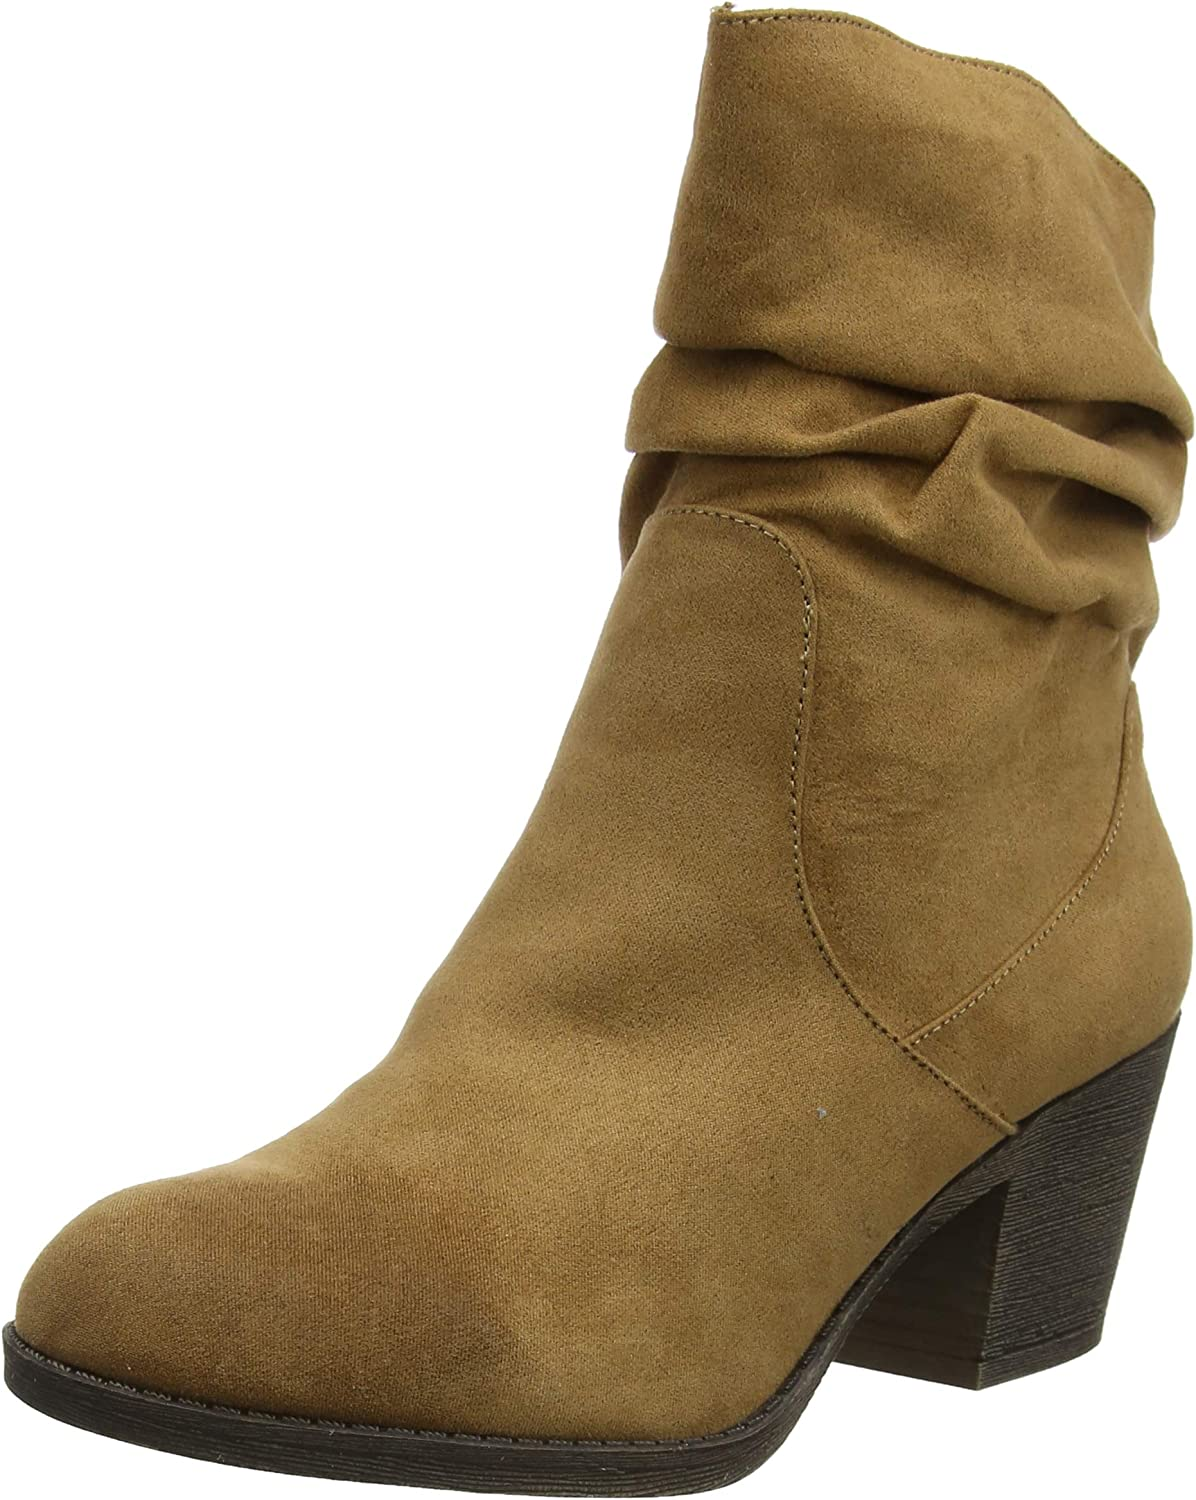 Rocket Dog Women's Slouch Boots